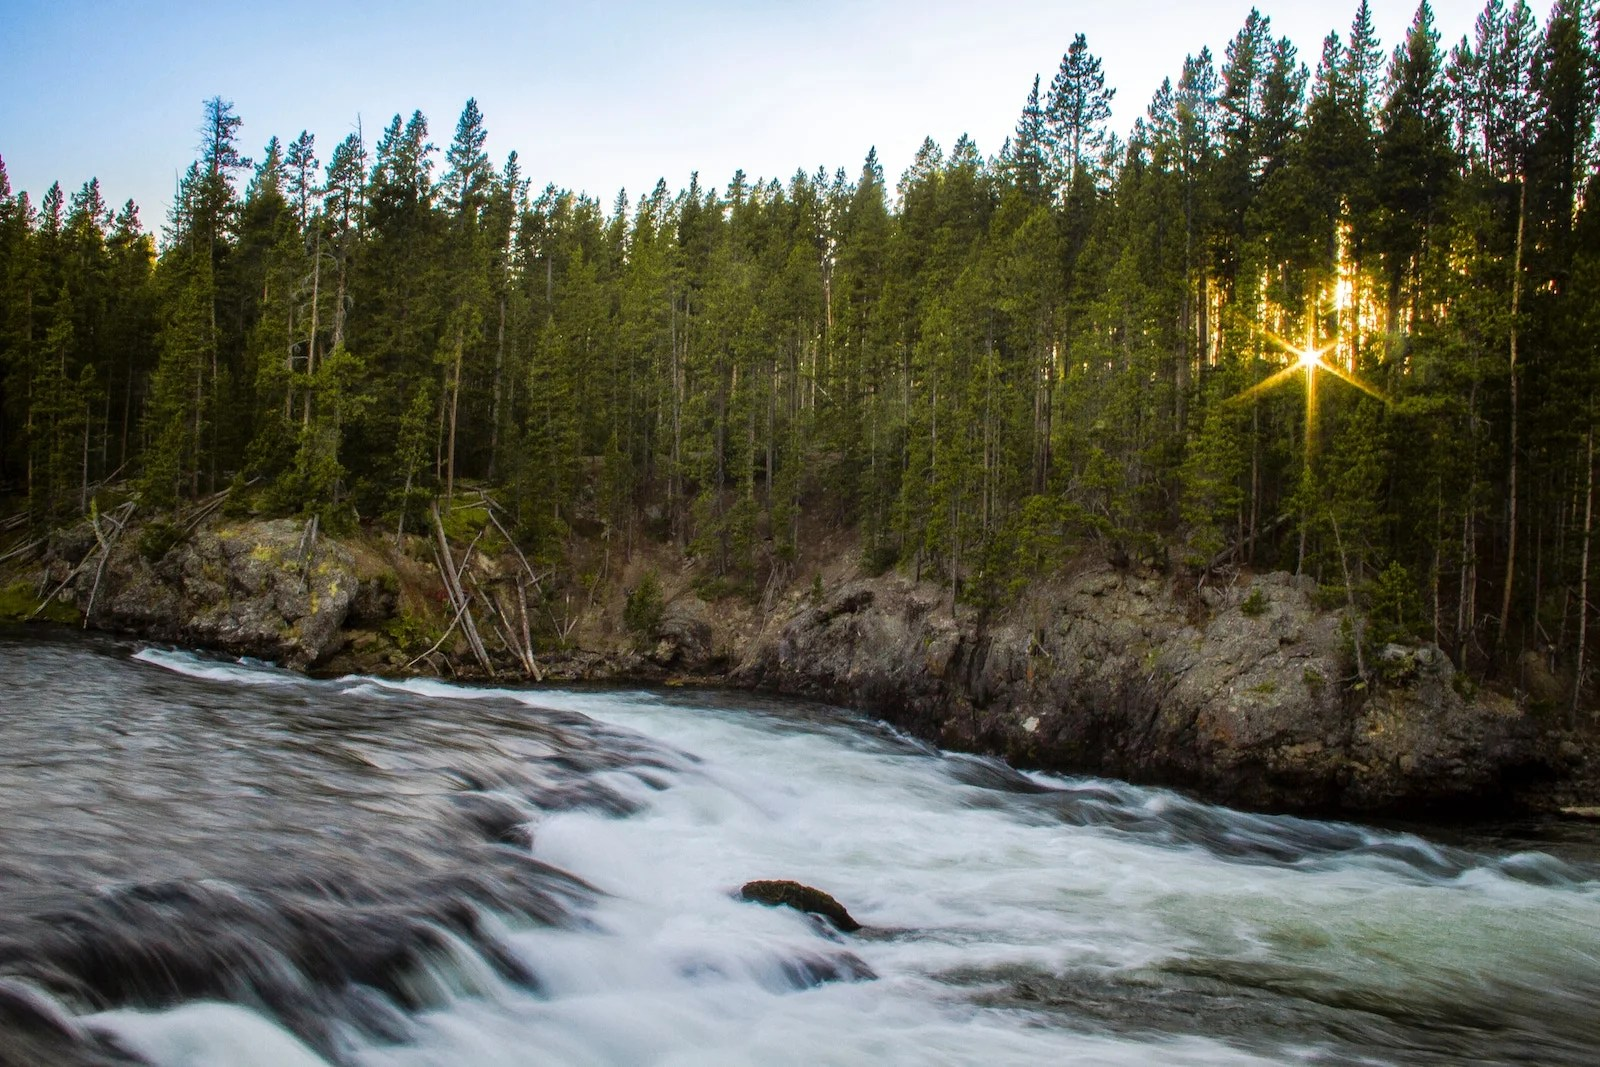 The Best Times to Visit Yellowstone